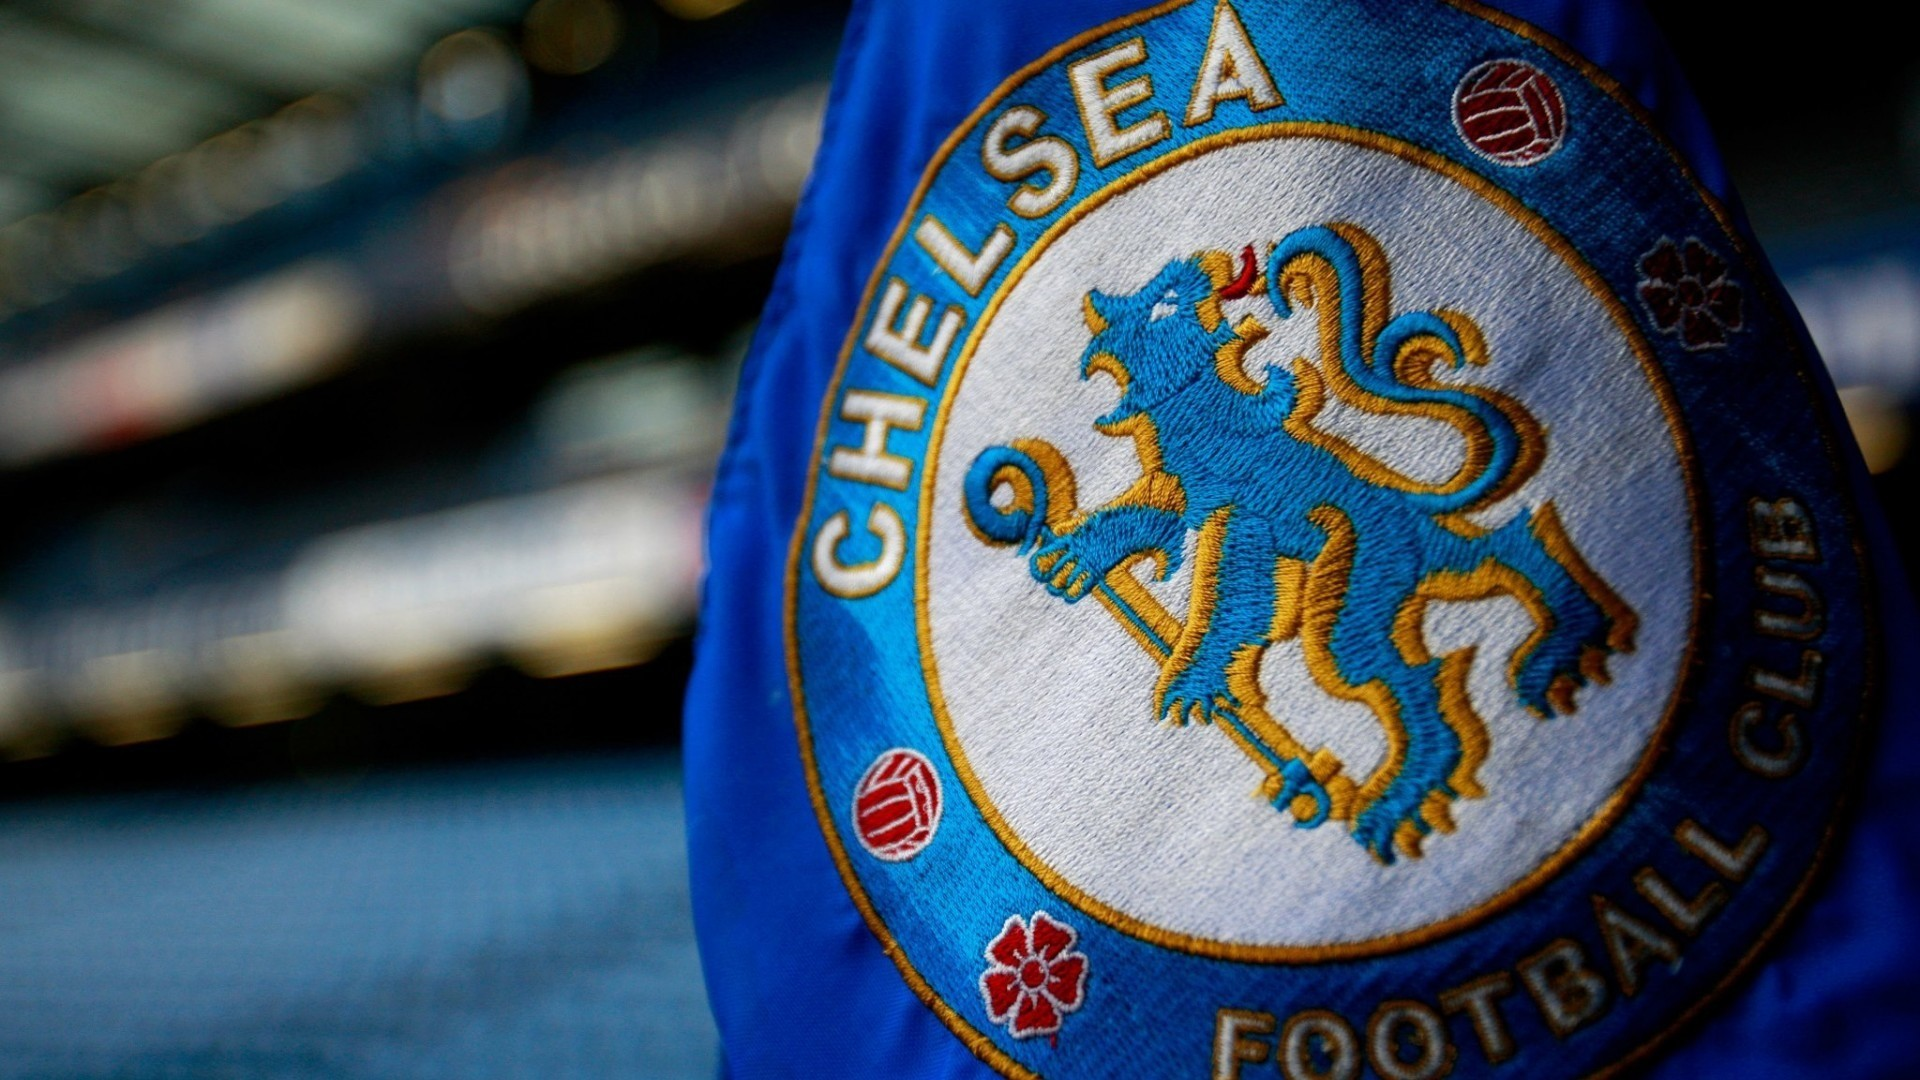 Chelsea FO HD Wallpapers 1080p Imagesize:  HD Wallpapers .